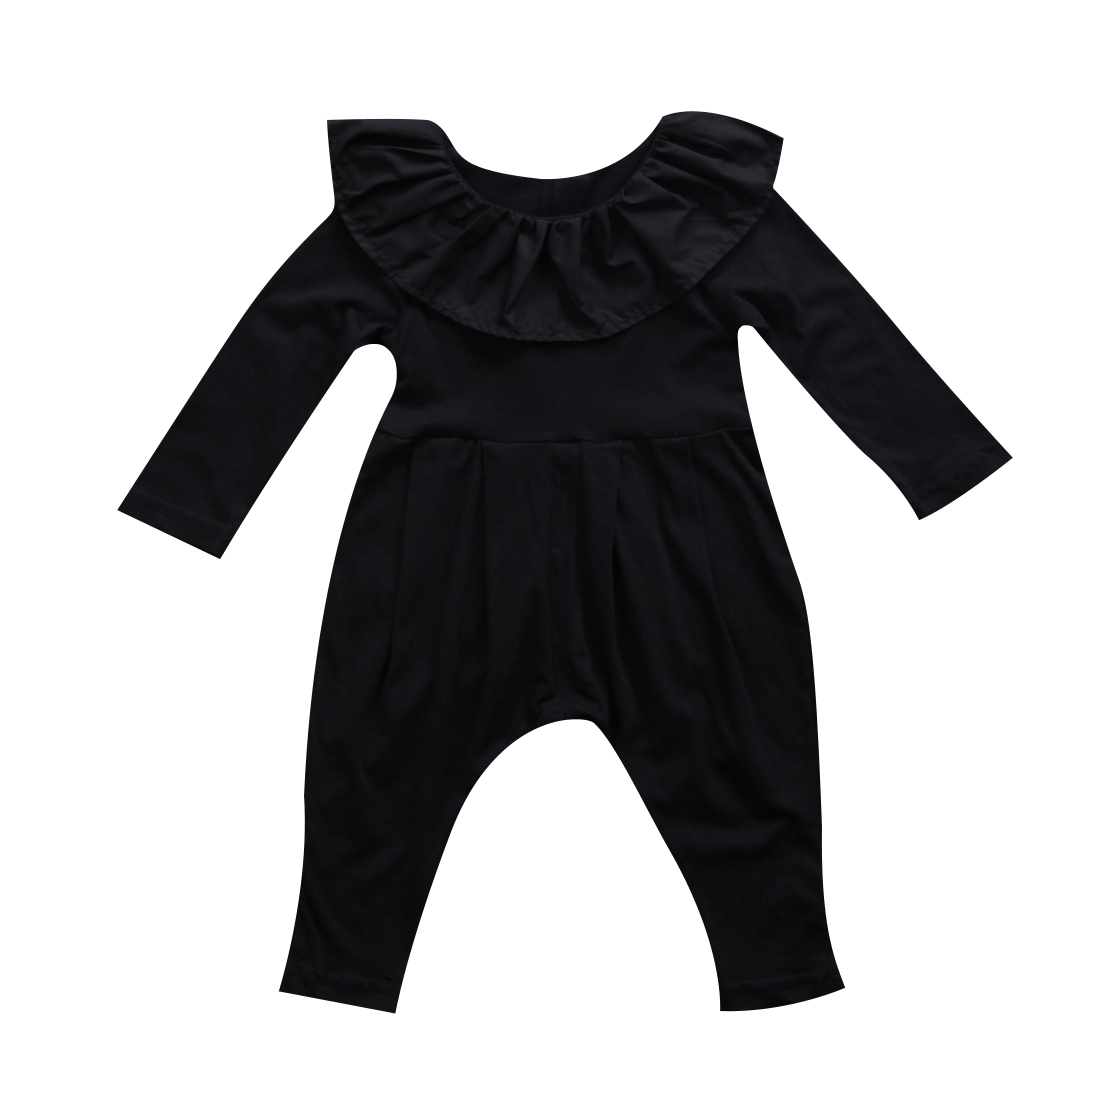 Cute Baby Girl Clothes Newborn Infant Baby Girl Black Ruffle Collar Long Sleeve Romper Clothes Outfits Baby Autumn Spring Romper dinstry 2018 spring and autumn newborn baby cotton long sleeve romper lion pattern